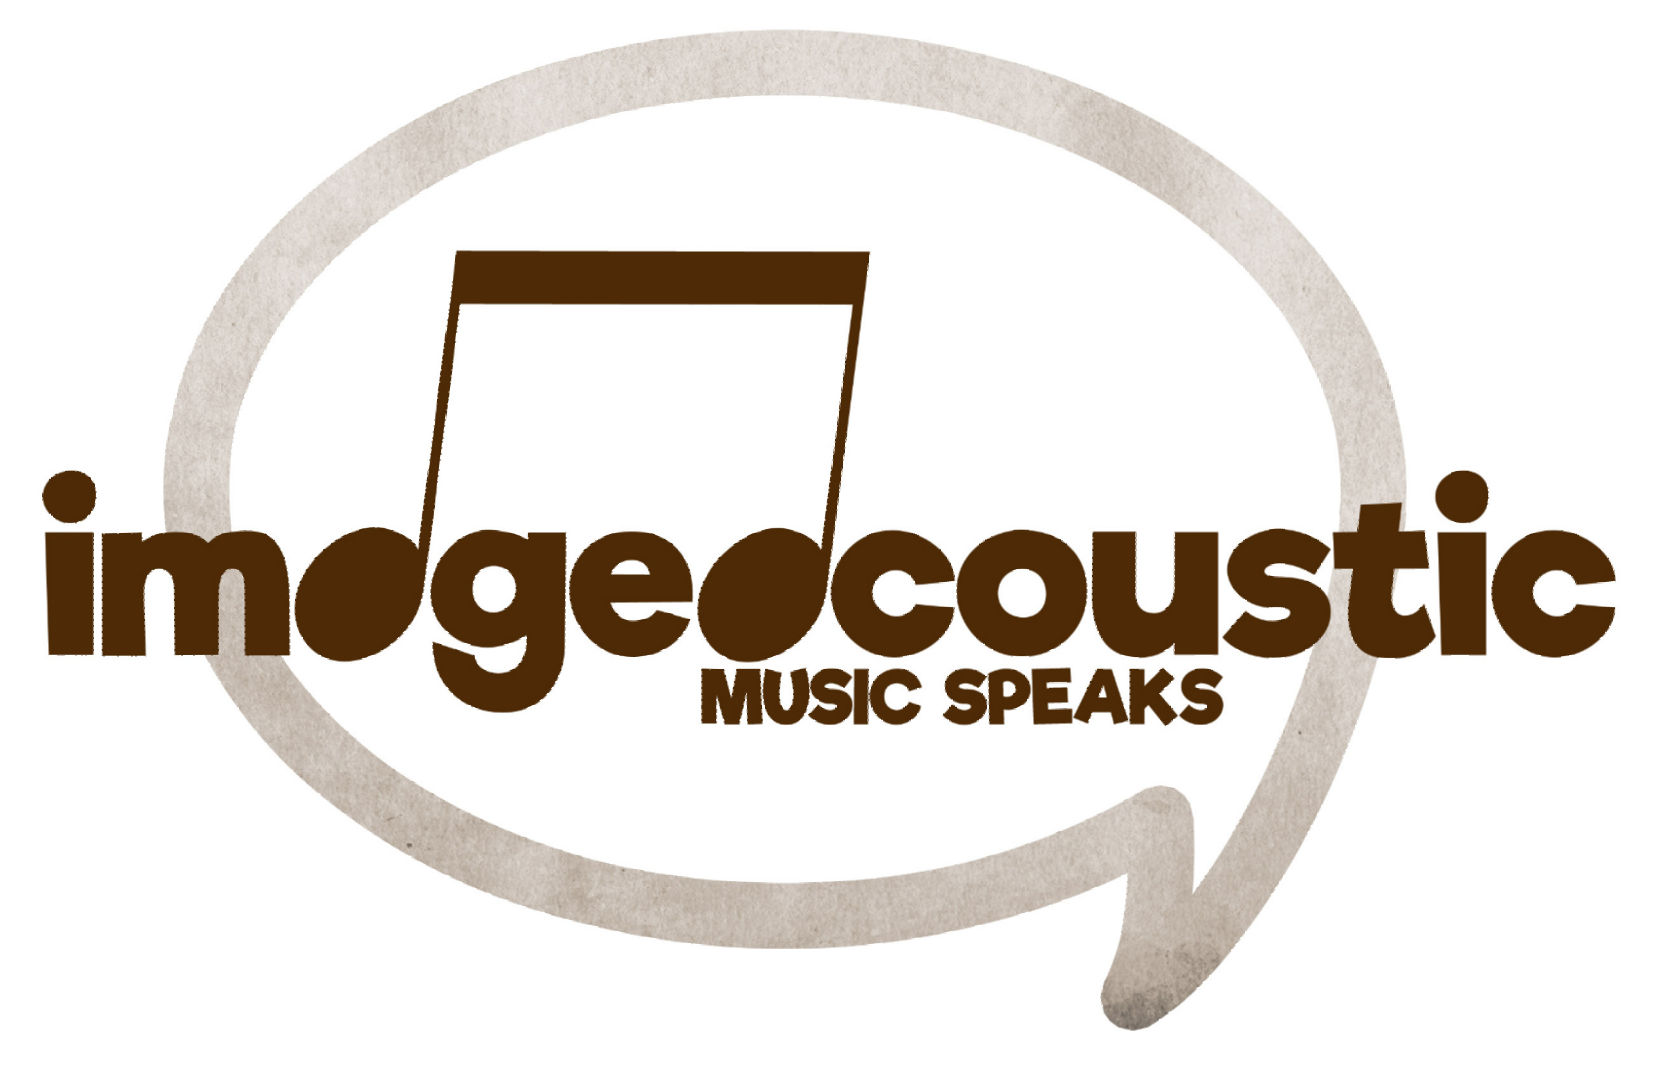 imageacoustic